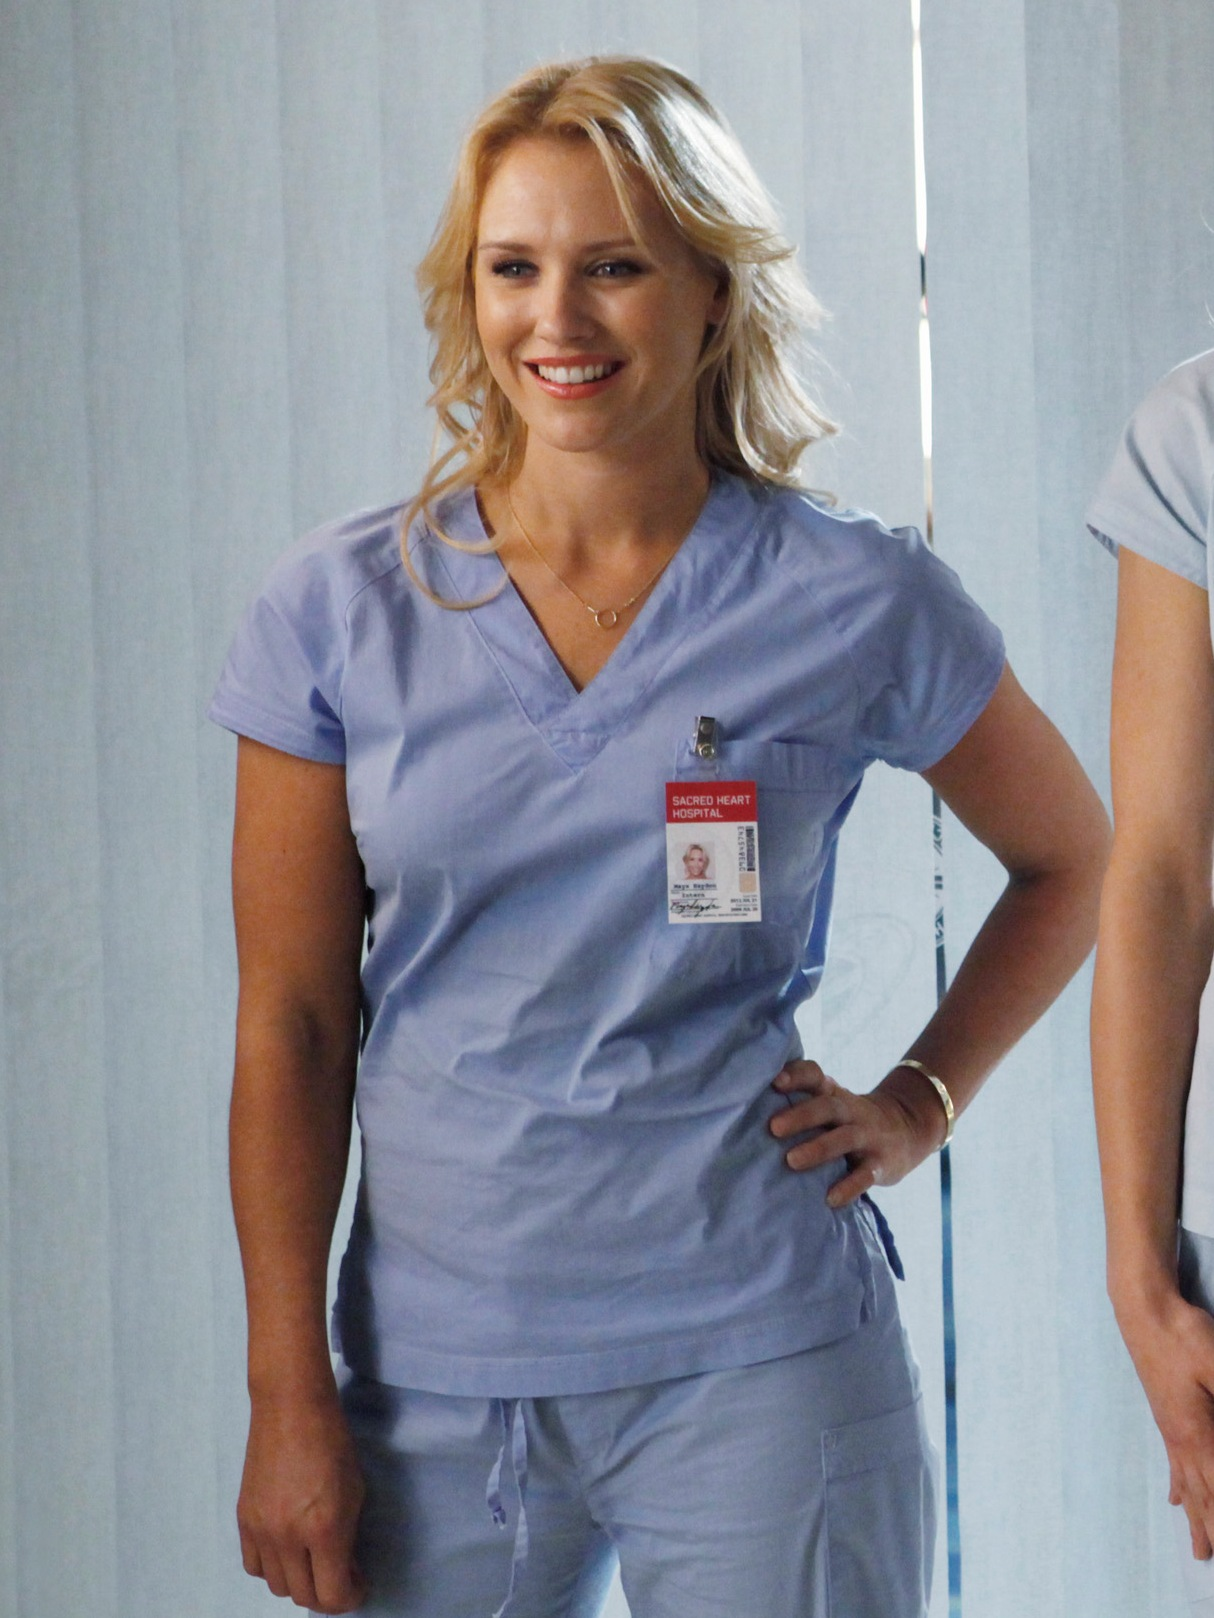 Nicky Whelan in Scrubs